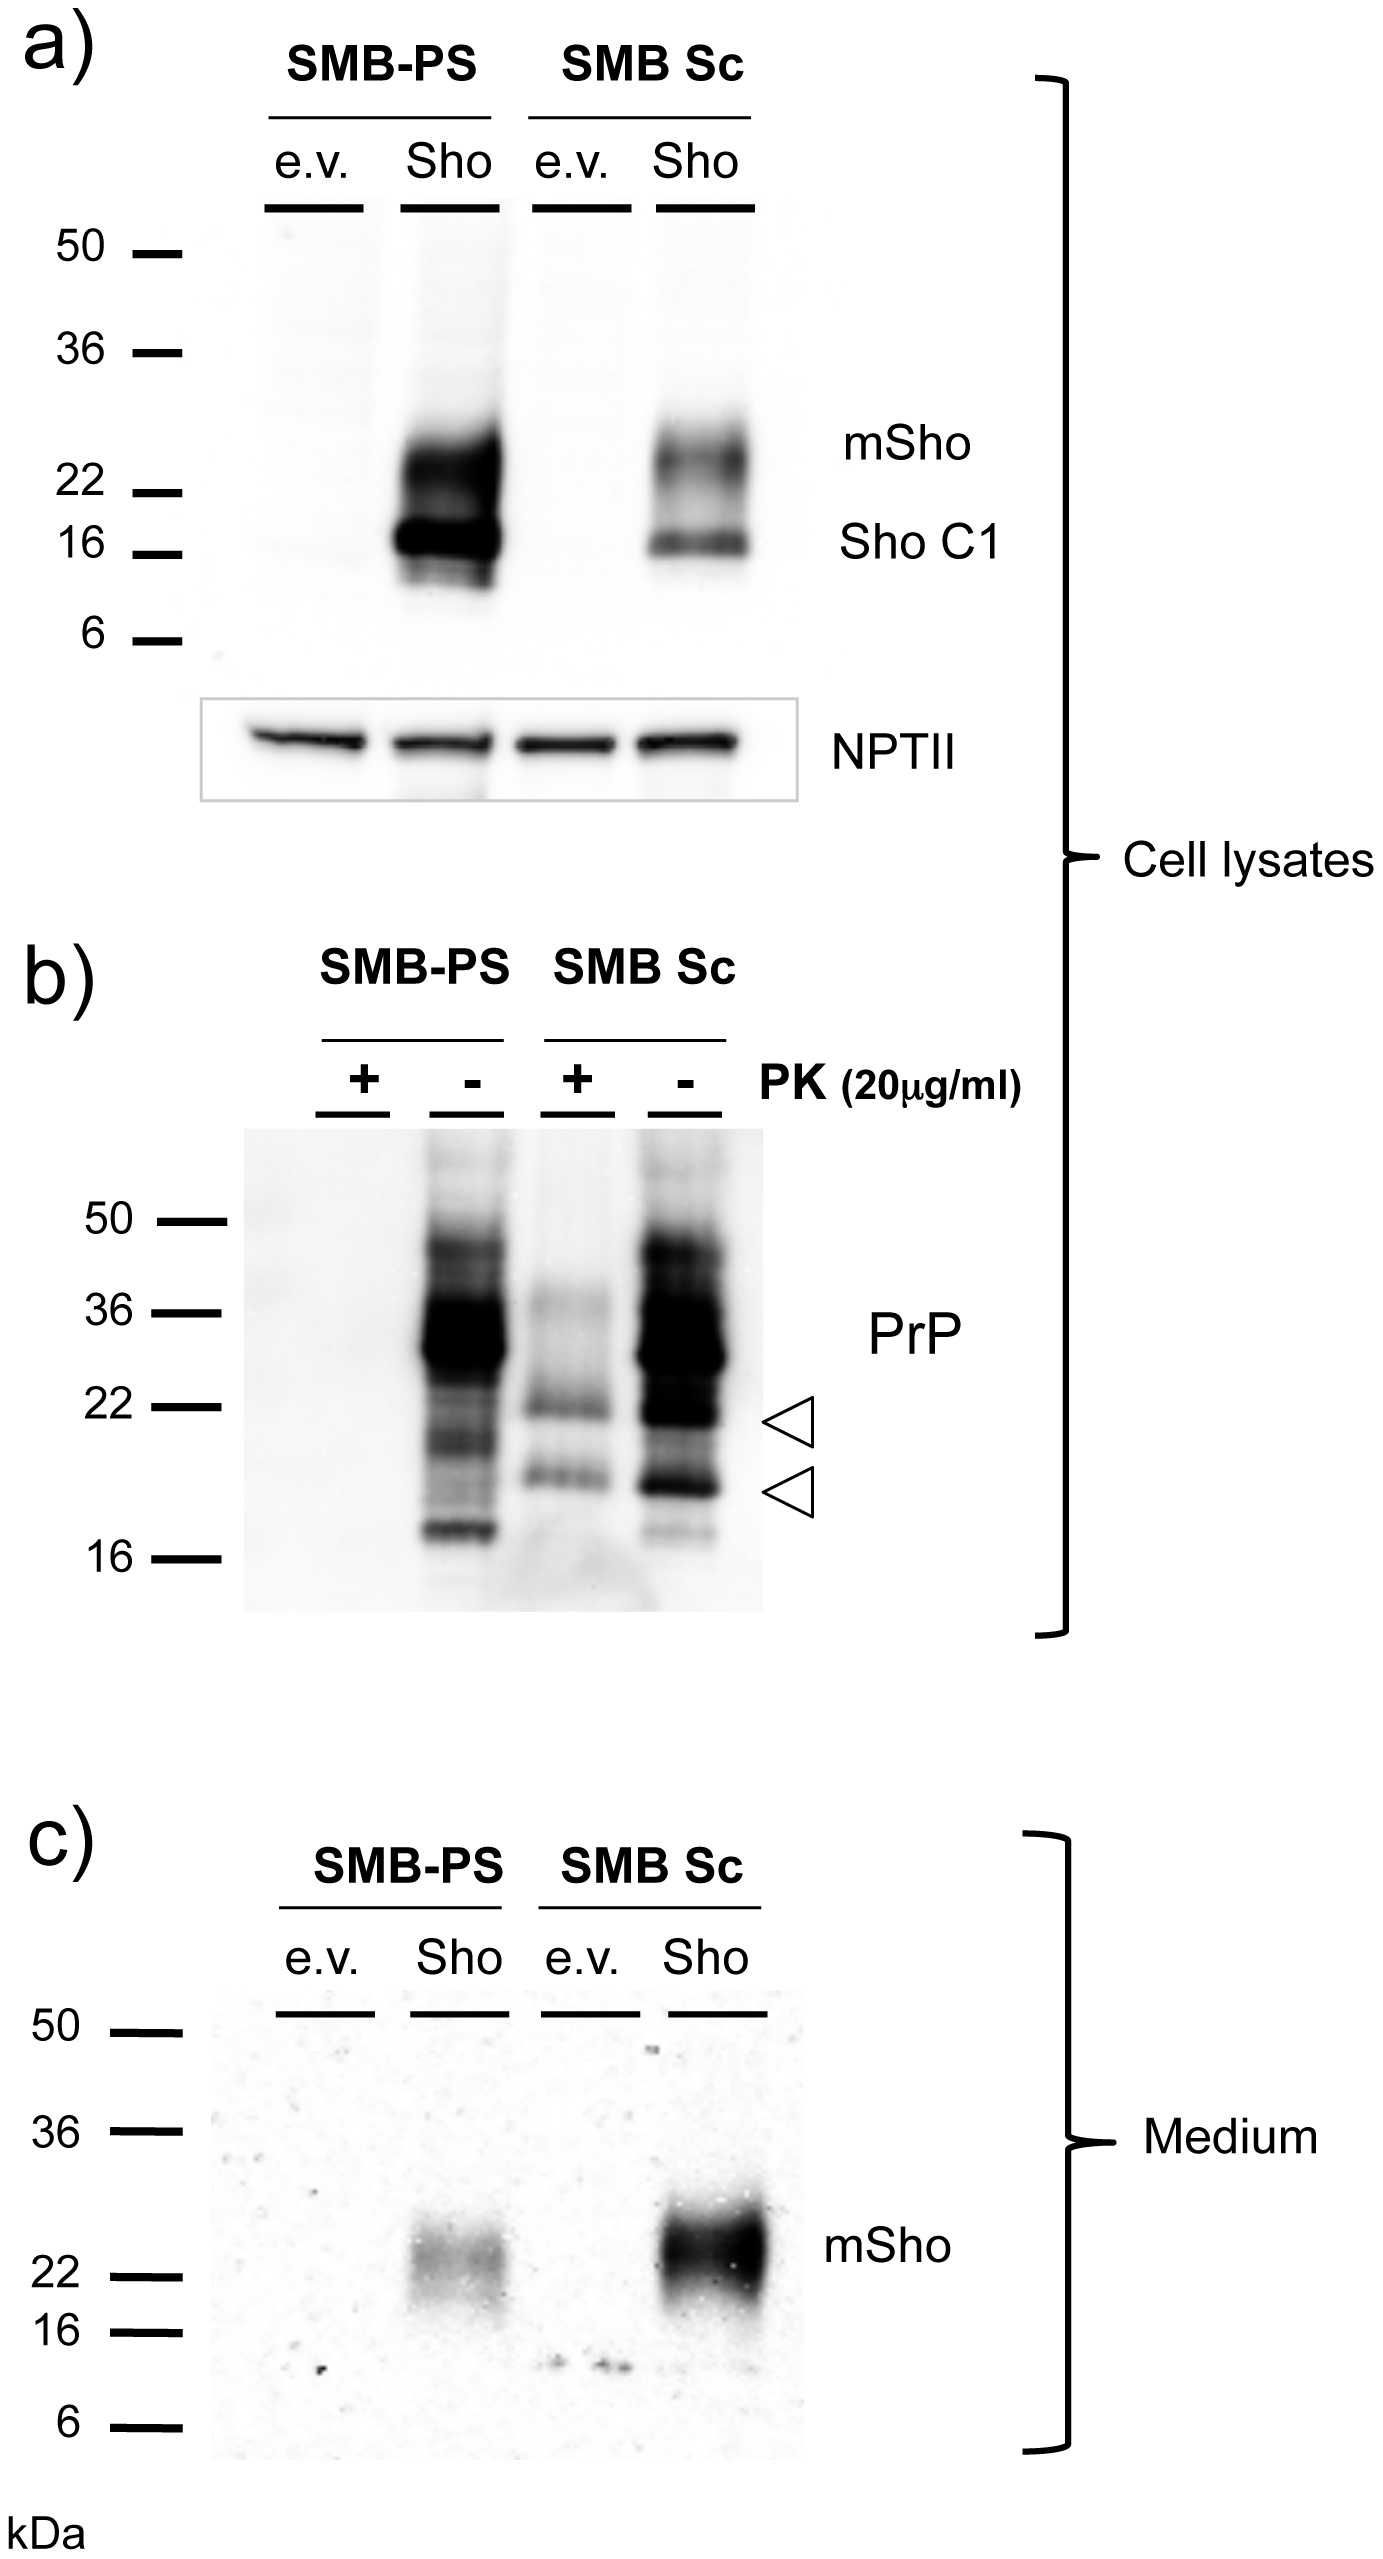 Sho protein in chronically infected SMB cells.